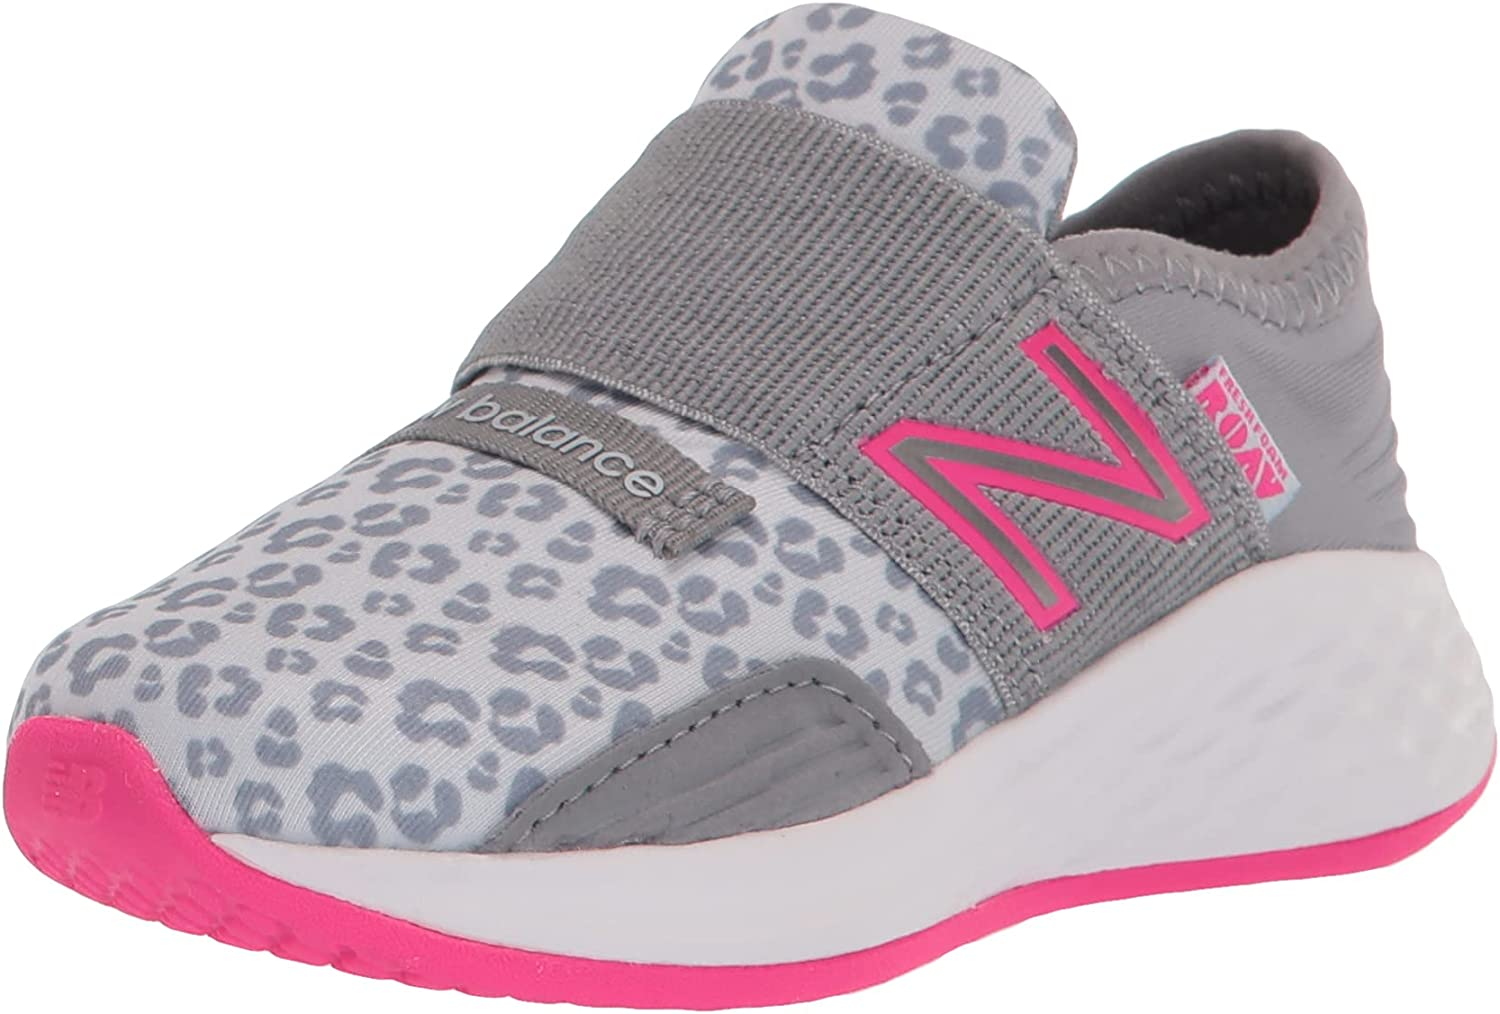 New Balance Sale Special Price Kid's Fresh Foam Sneaker Ranking TOP8 V1 Lace-Up Roav